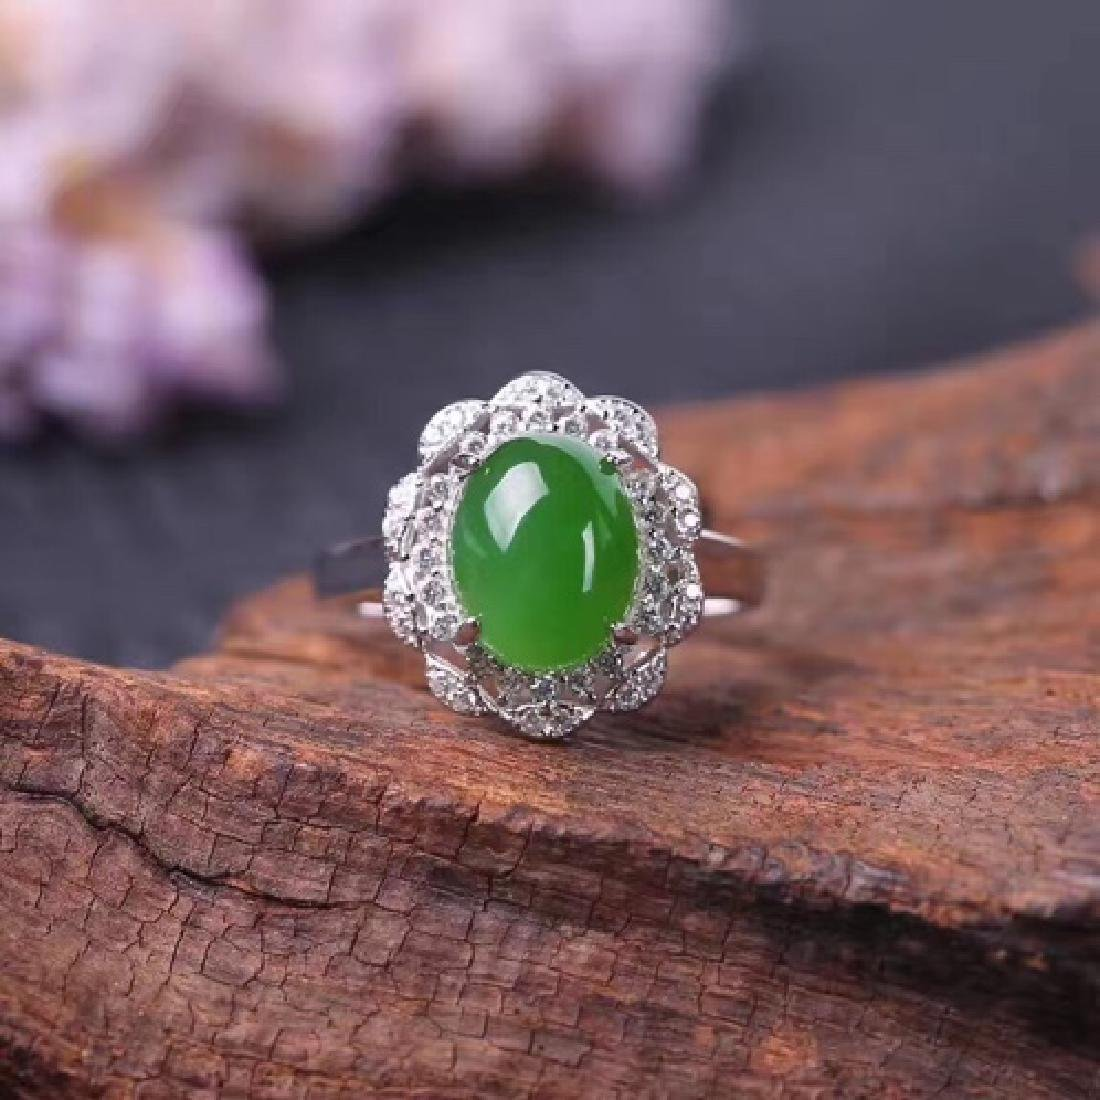 NATURAL OVAL-SHAPED GREEN JADEITE RING